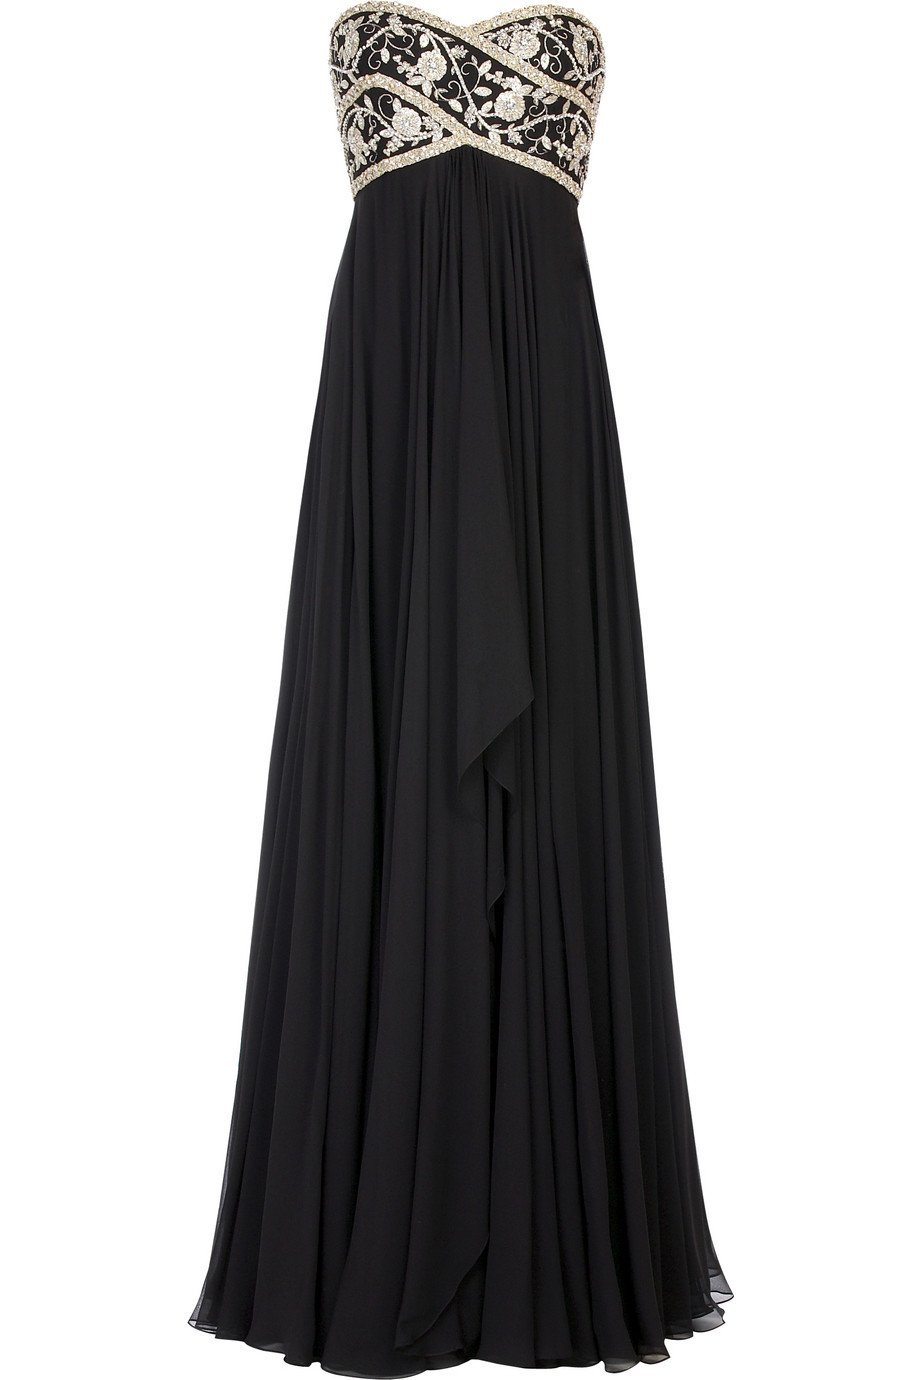 Marchesa beaded chiffon gown net a porter com stylehive